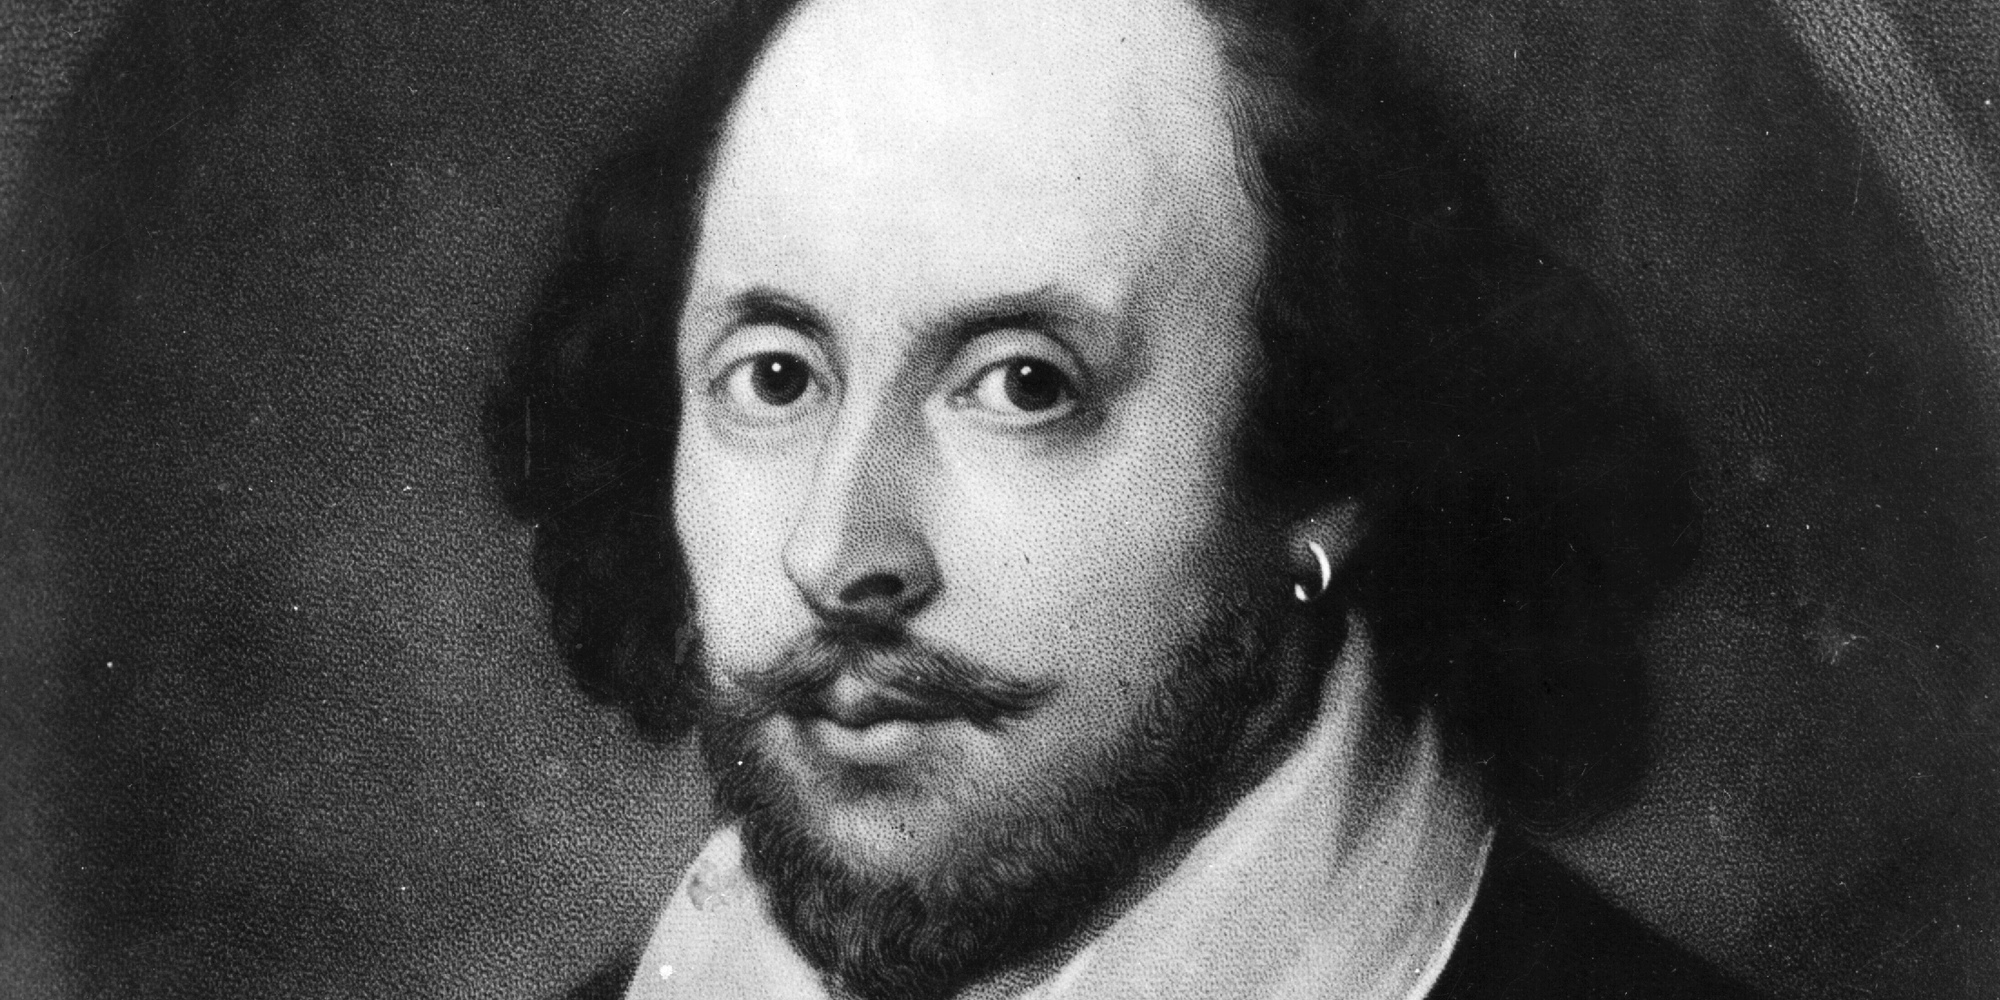 1609_shakespeare-chandos-portrait.jpg